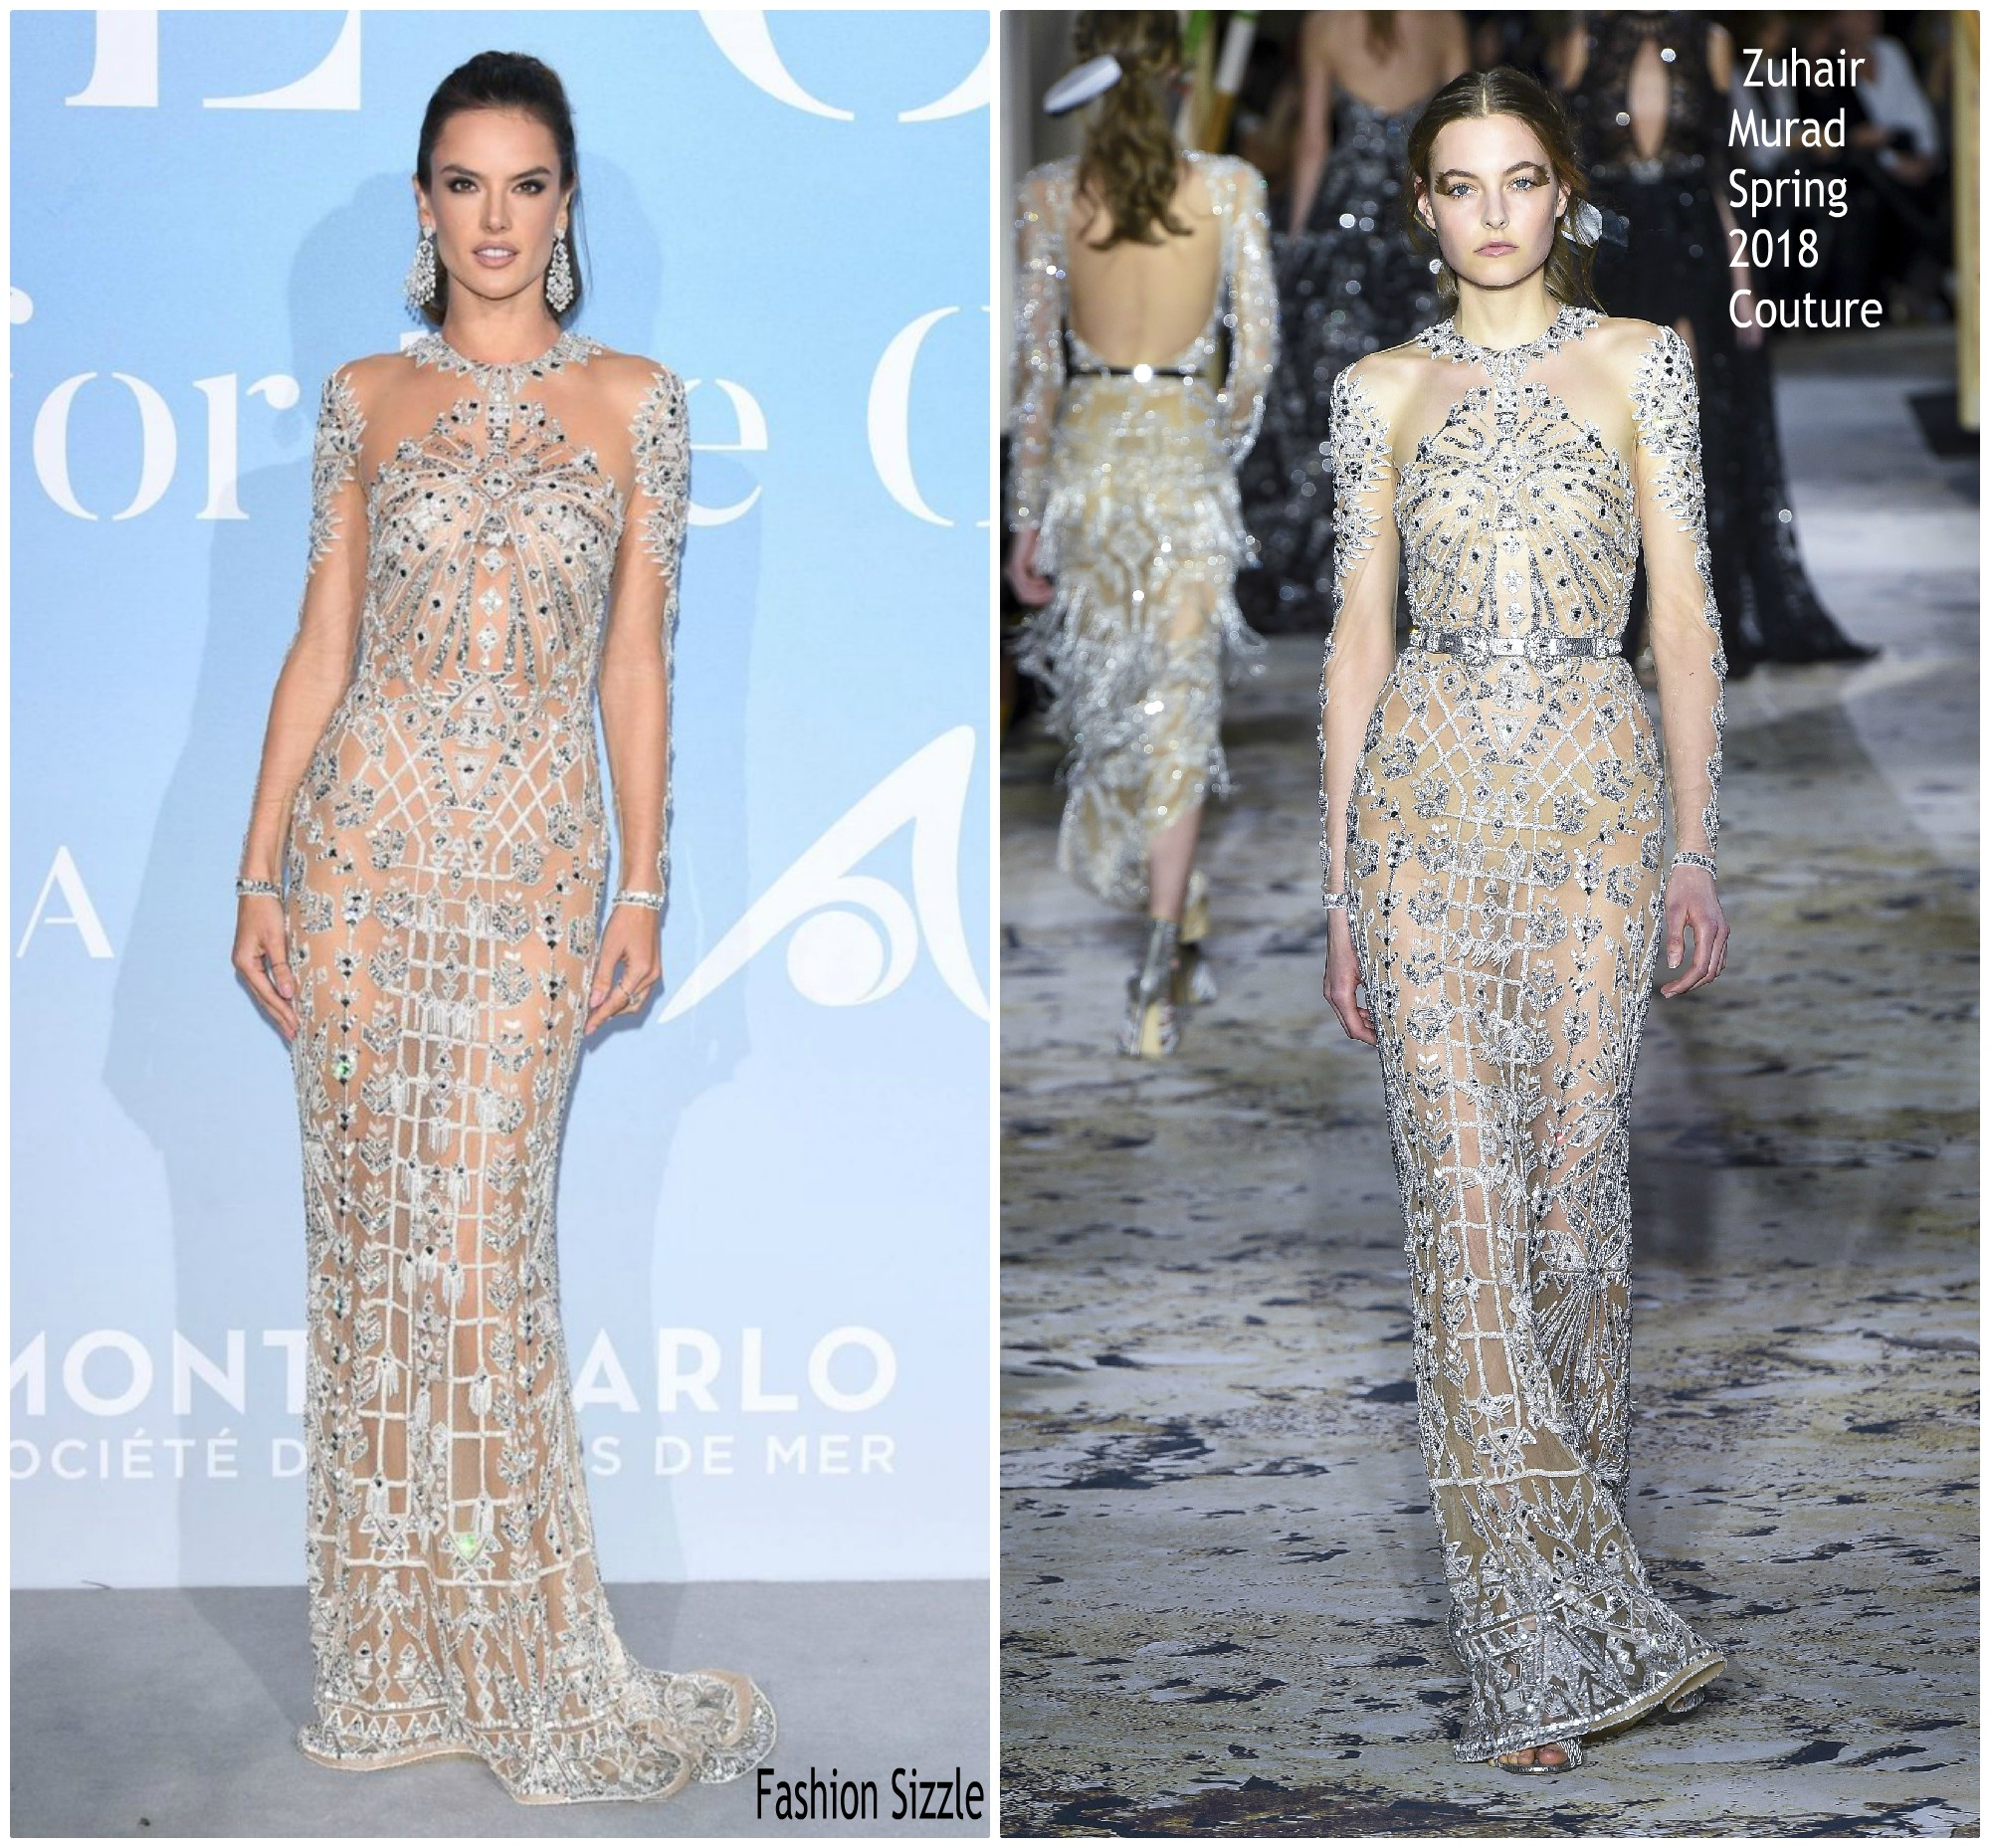 alessandra-ambrosio-in-zuhair-murad-couture-2018-monte-carlo-global-ocean-gala